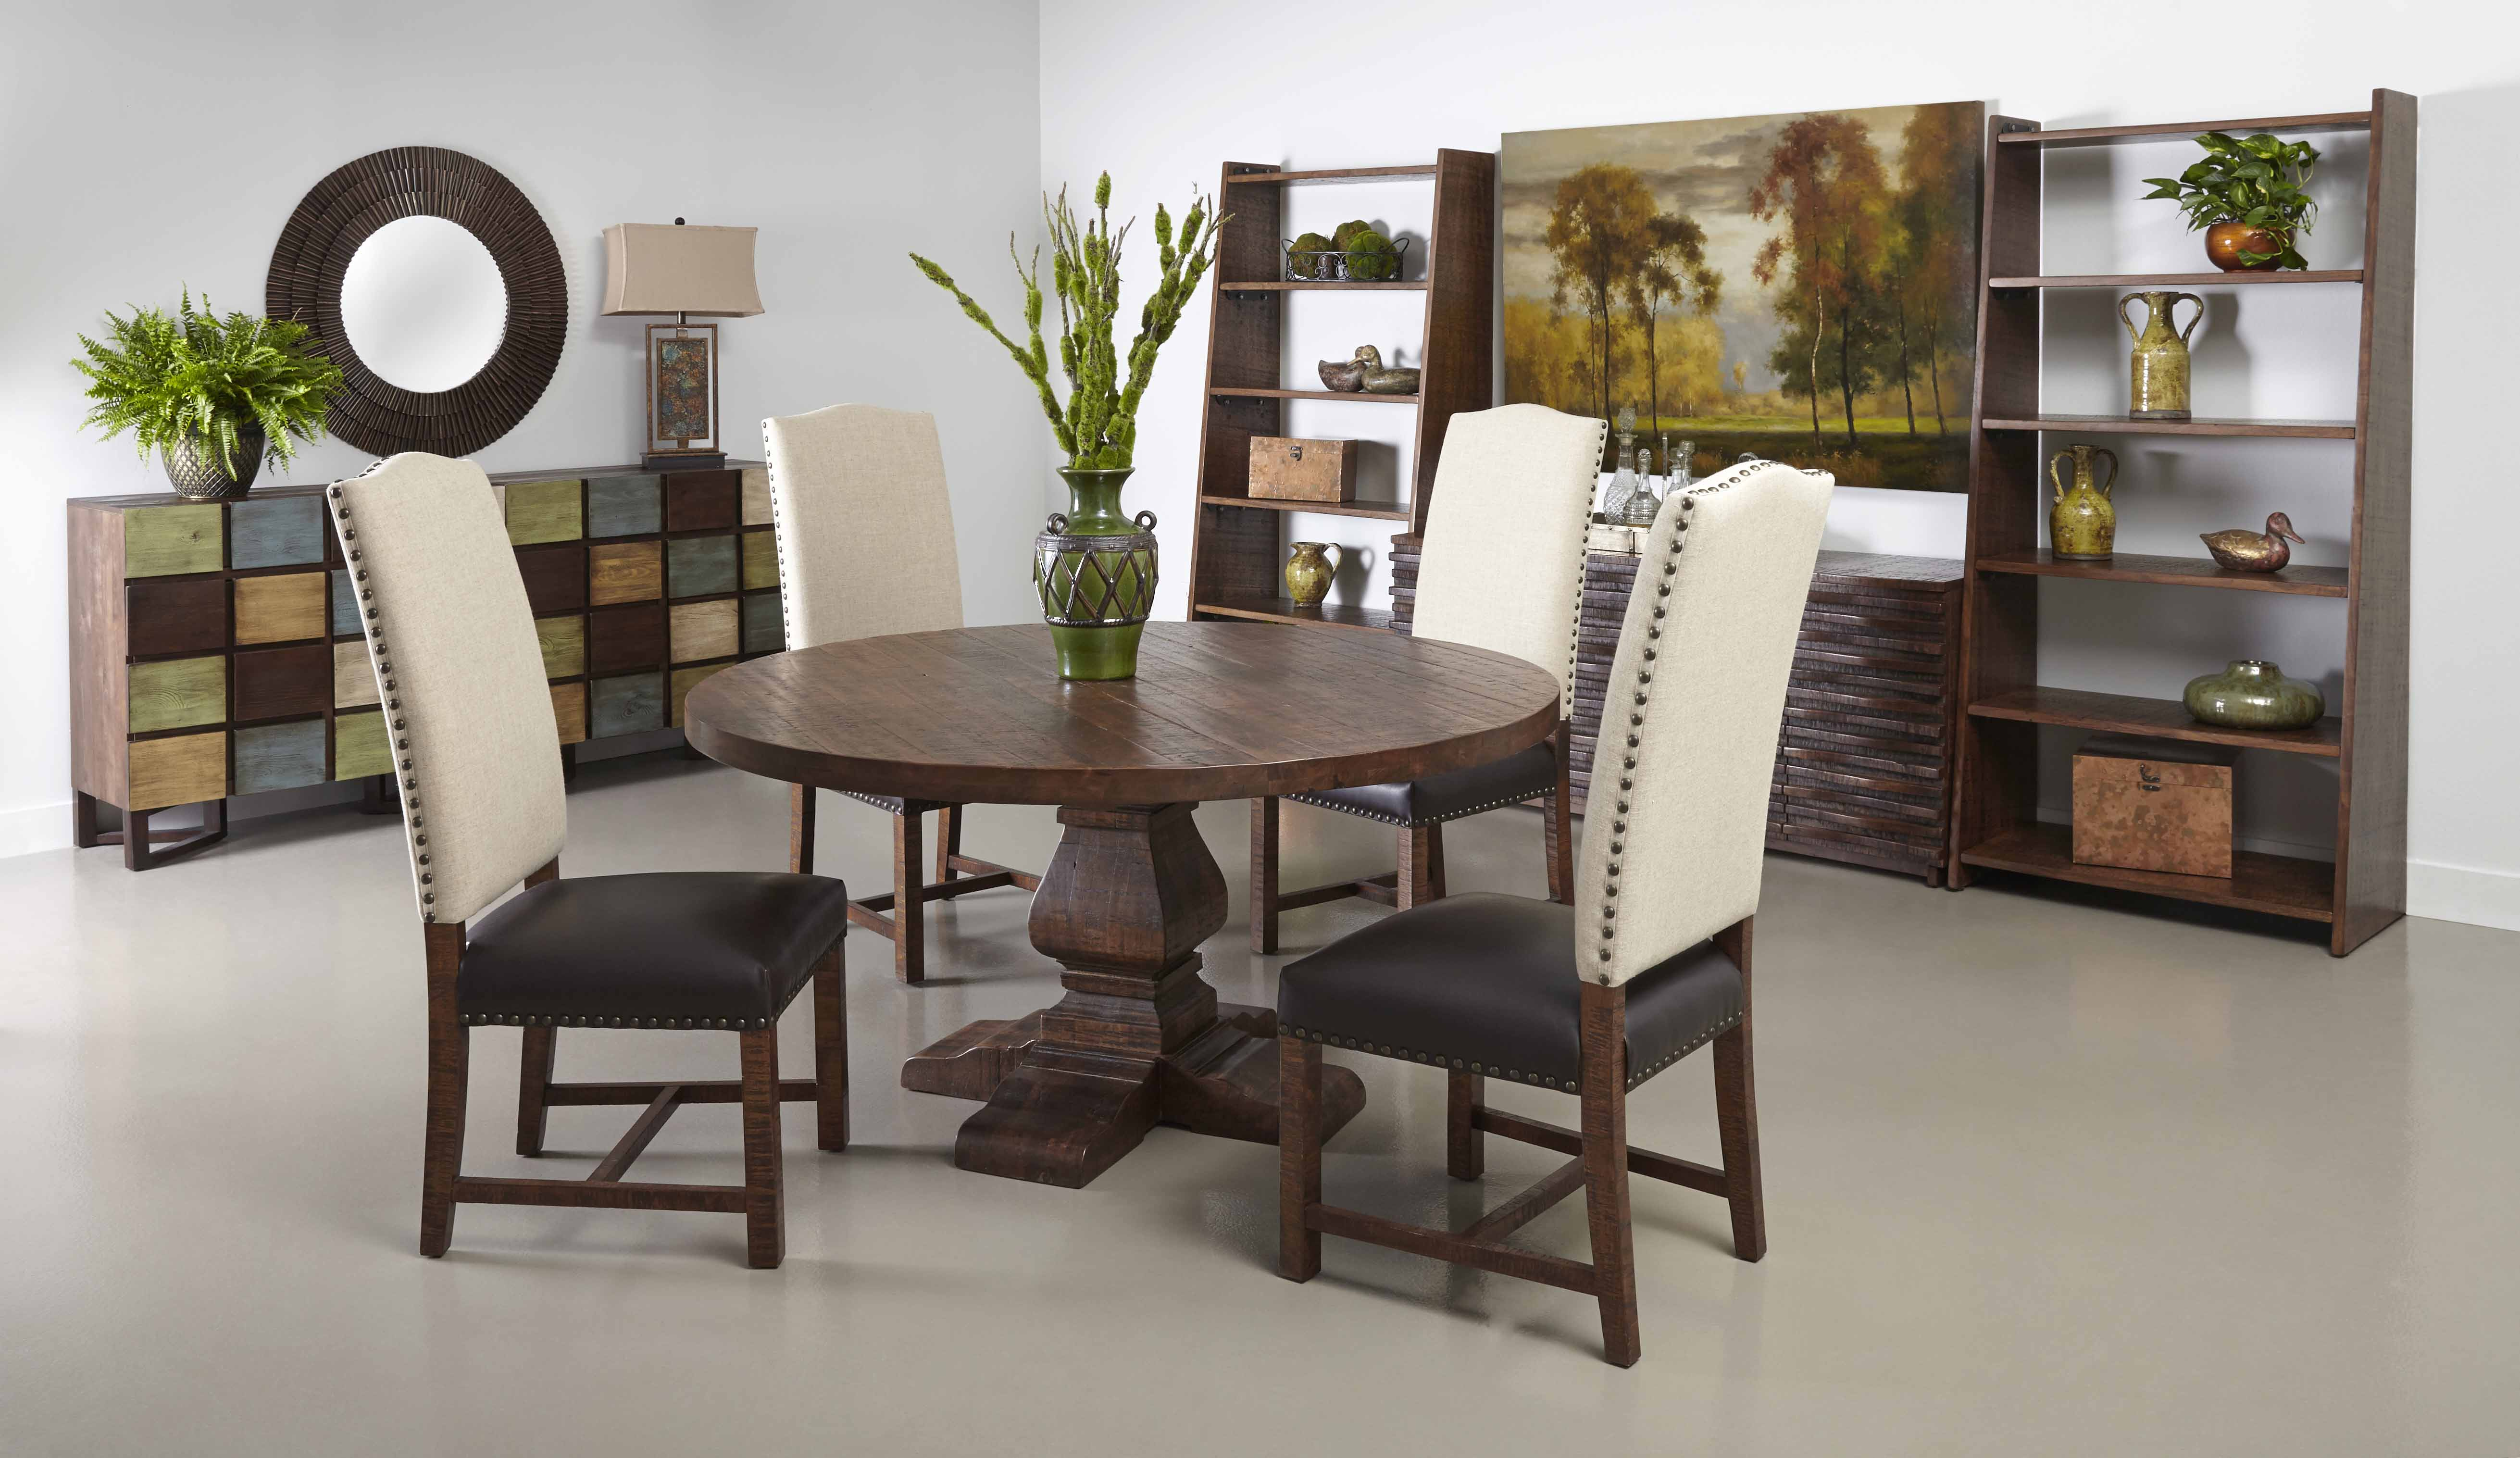 coast woodbridge dining room set with leather accent ctc table chairs hampton bay patio furniture replacement cushions high nightstand essentials brand big umbrella garden end